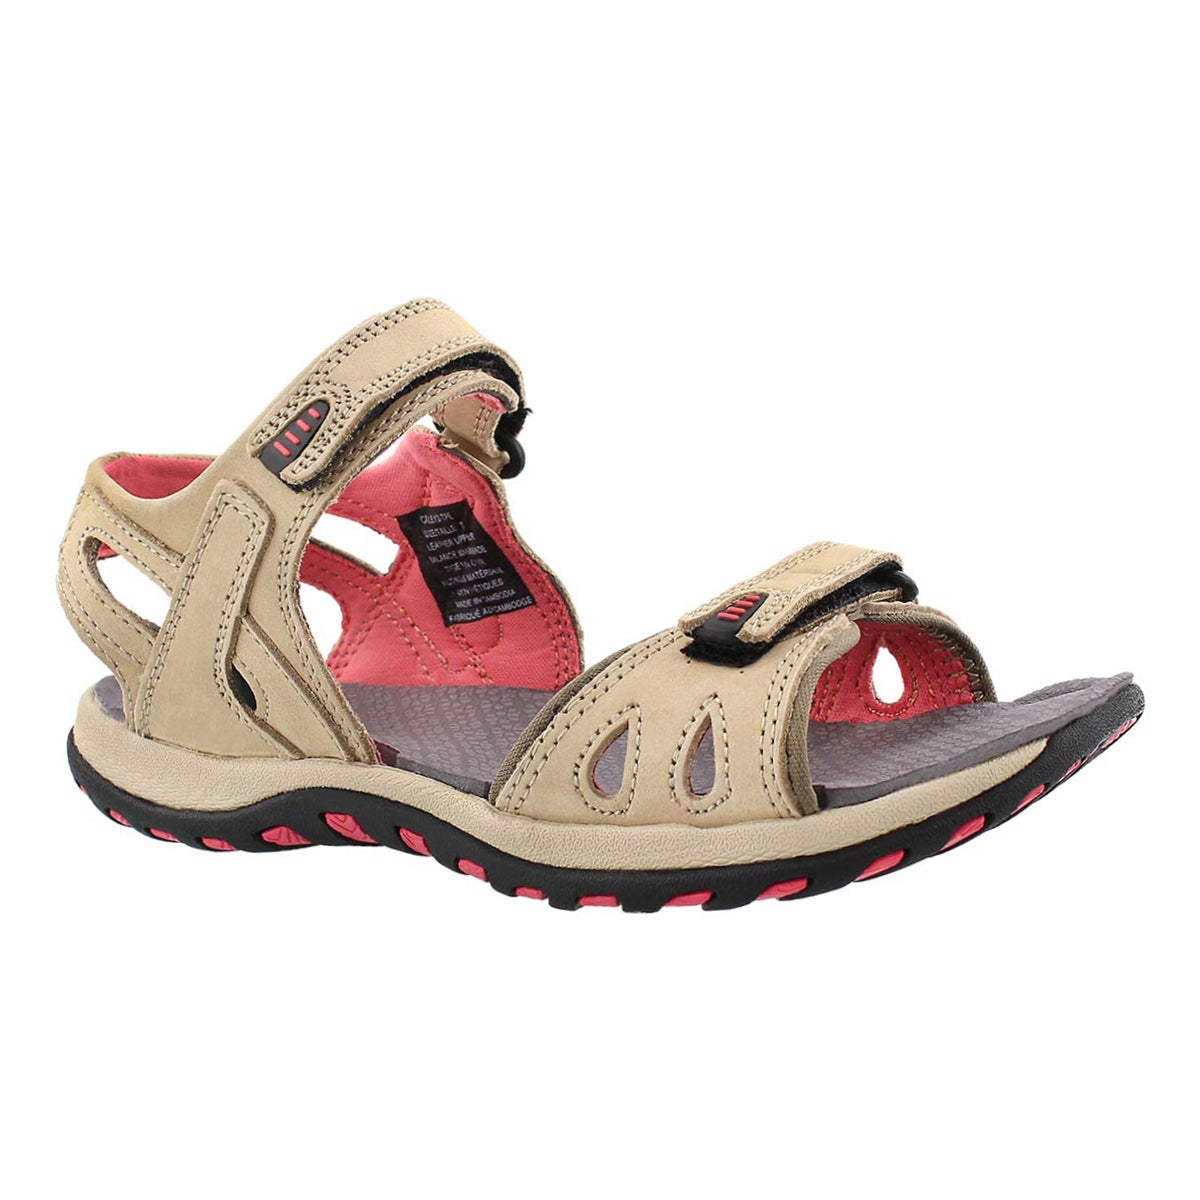 Women's CALEY 2 taupe 2 strap sport sandals